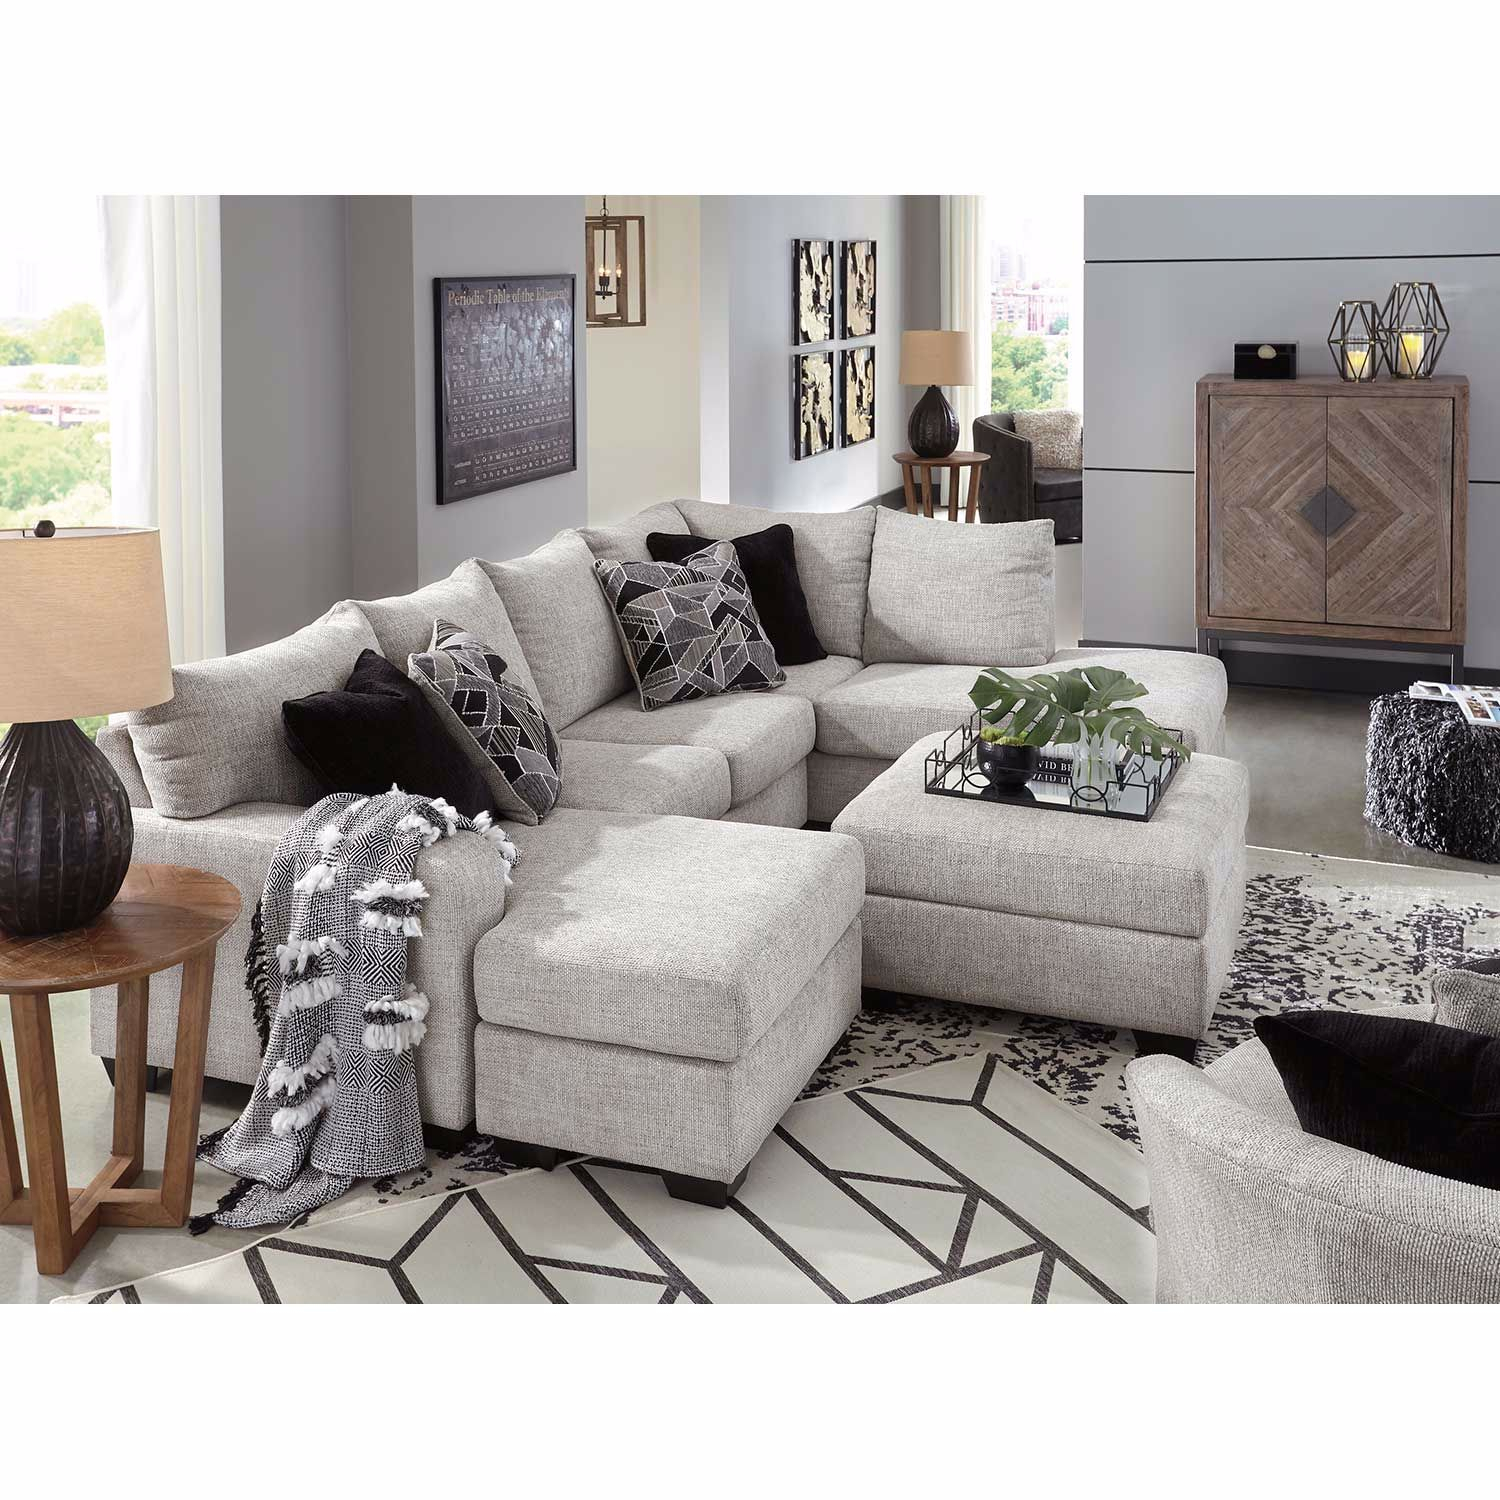 Megginson 2 Piece Sectional With Laf Chaise 9600616/03 For Delano 2 Piece Sectionals With Laf Oversized Chaise (View 14 of 15)